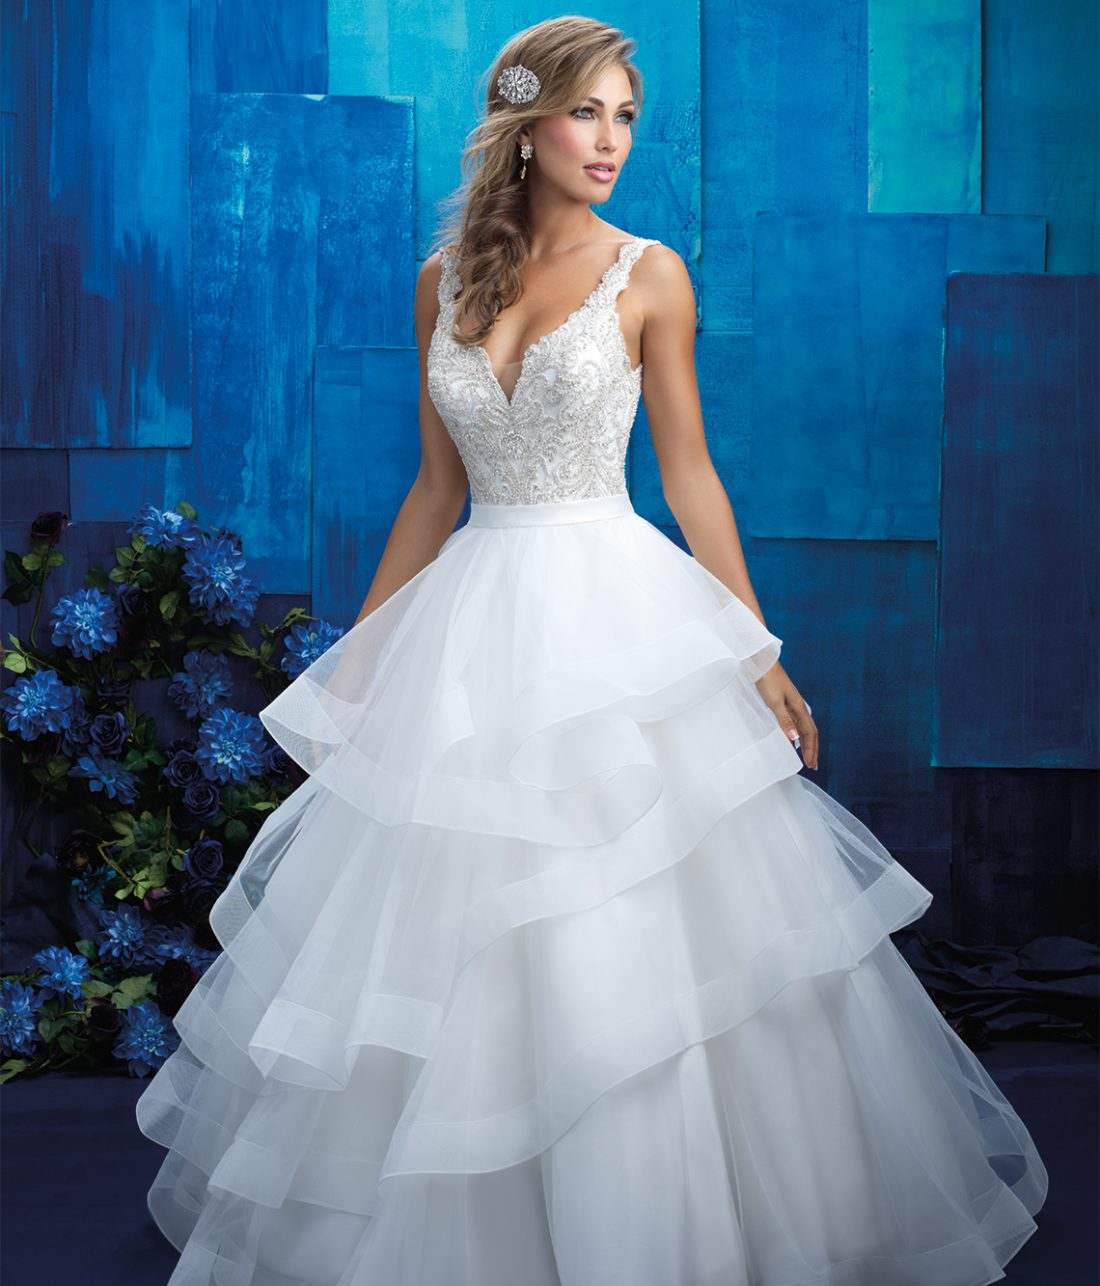 Allure Bridals Style 9418 | This fairytale frock features dreamy organza and tulle, with a fitted bodice swathed in sparkling beaded embroidery. $1,572, Brides 2 Be by Hope Mitchell, Rehoboth, Del., www.brides2bebyhope.com